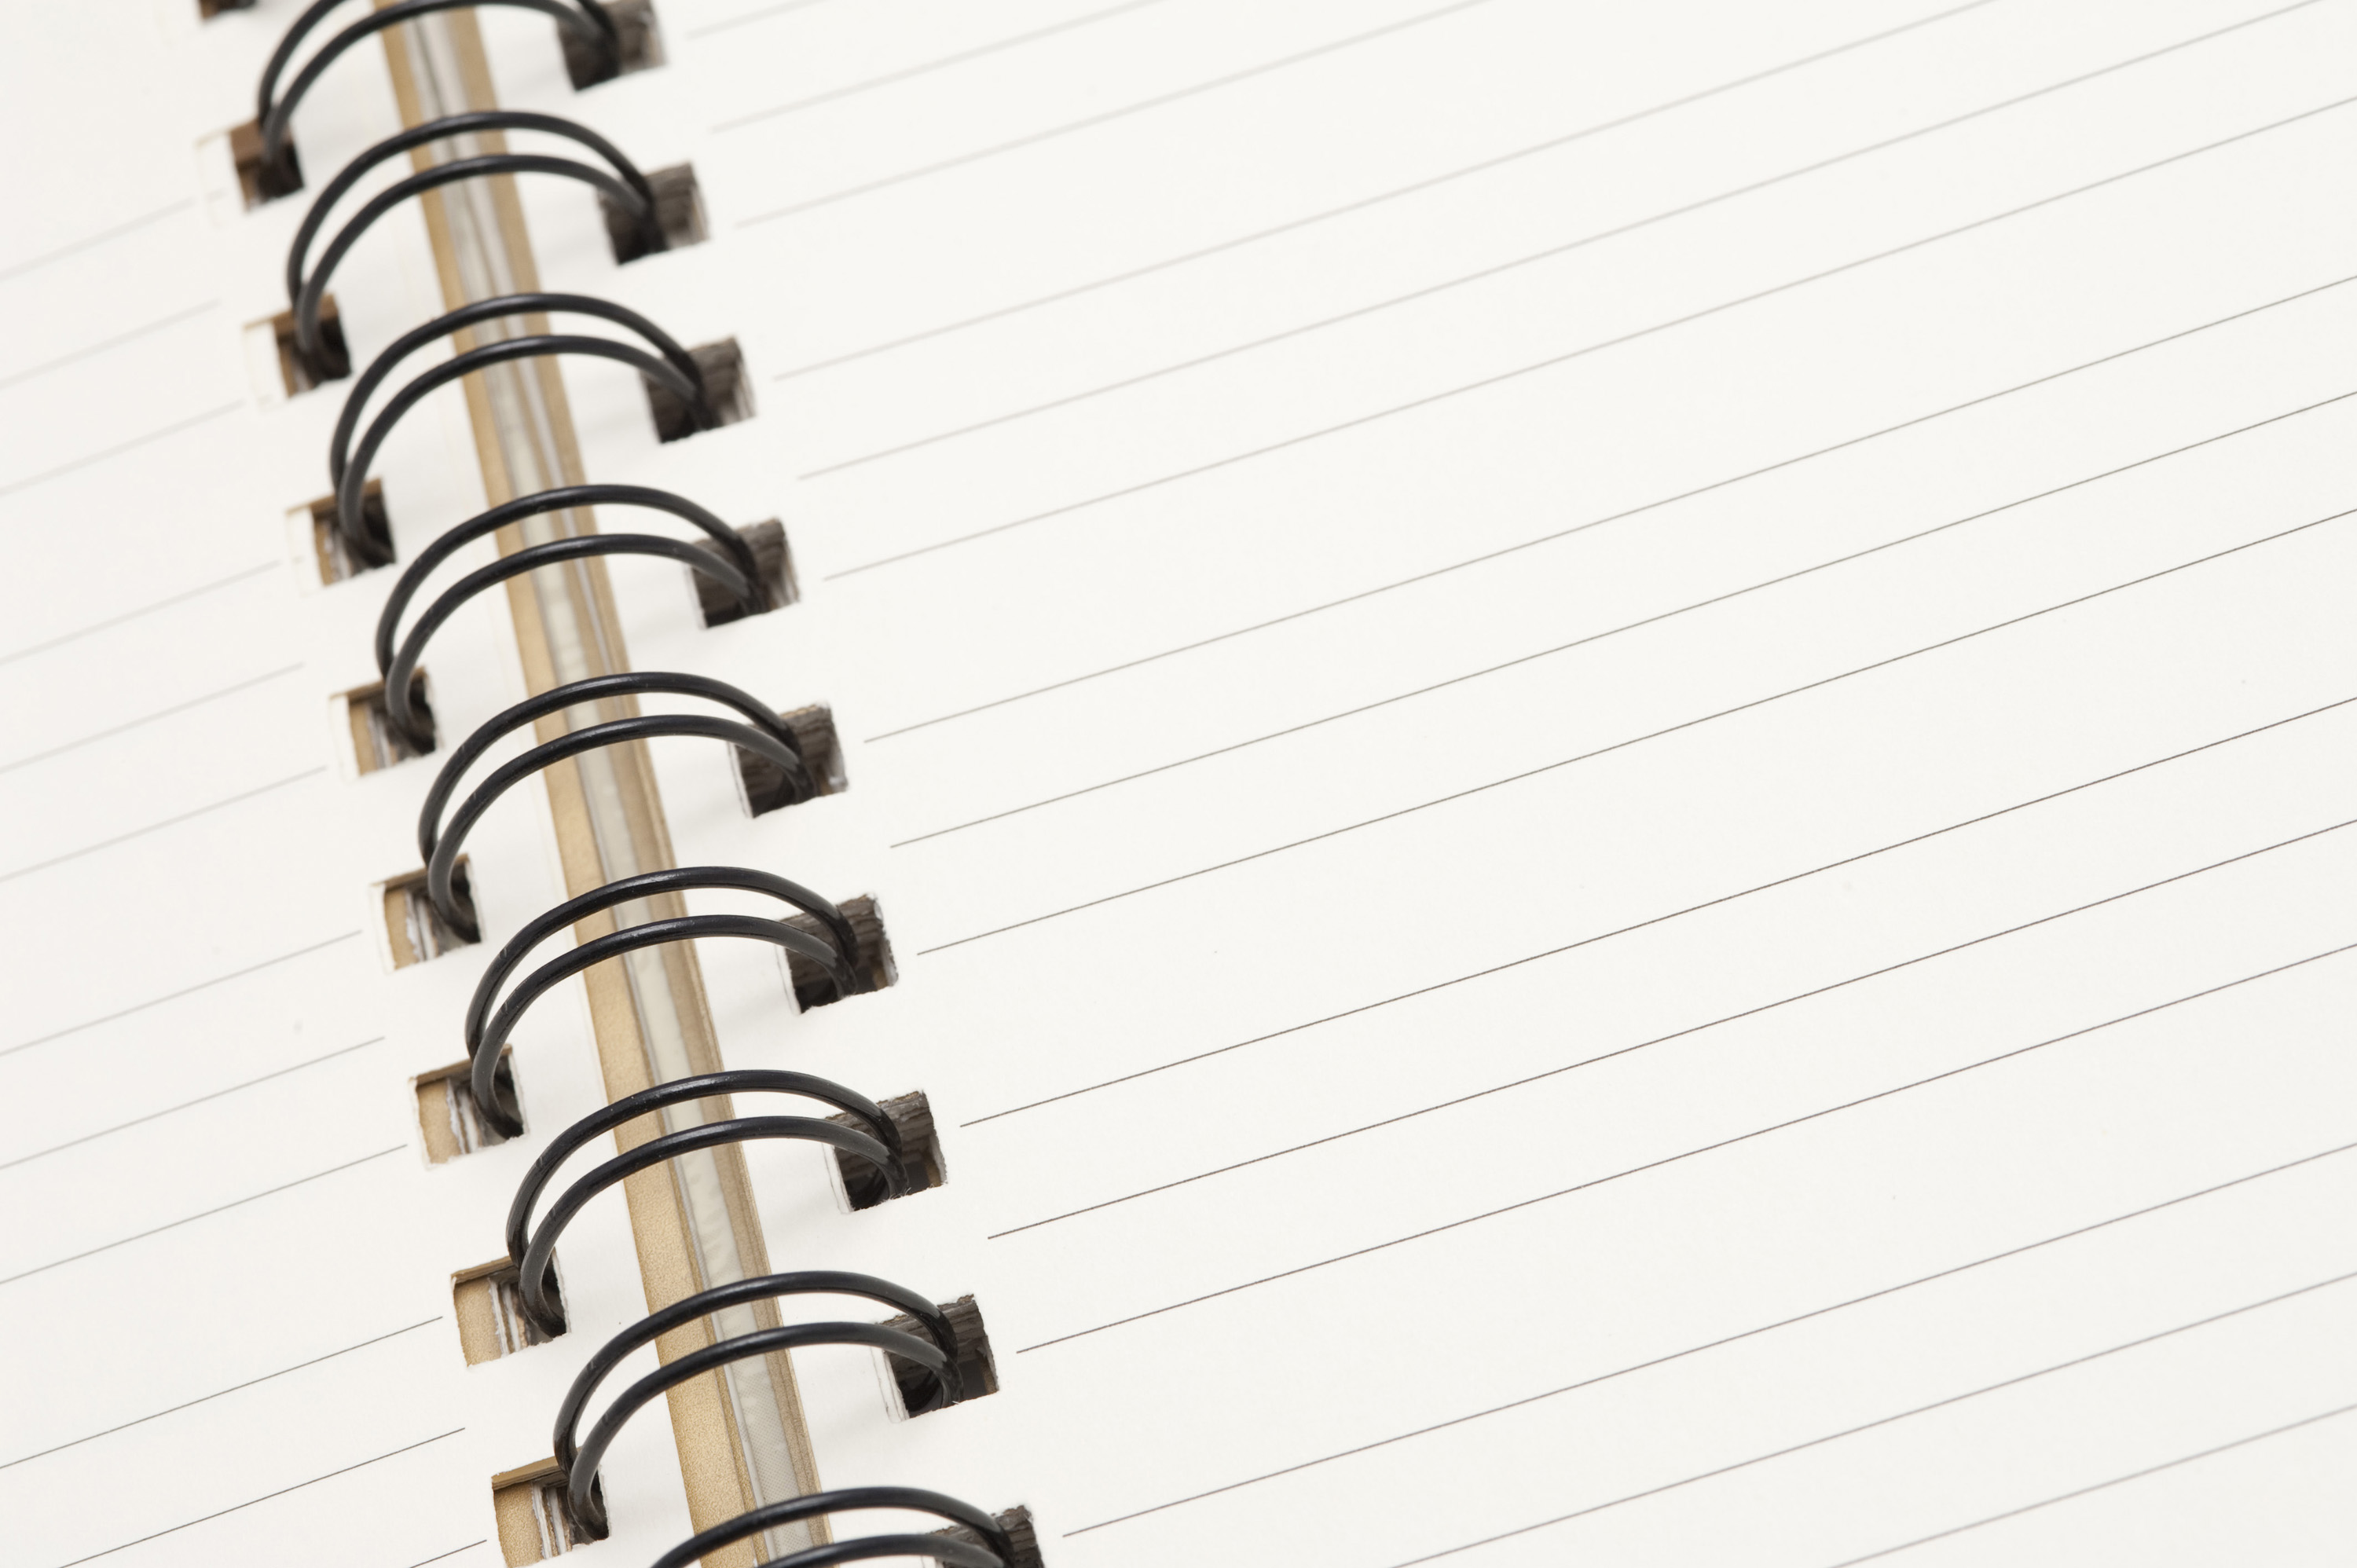 free image of lined notebook with a spiral binding